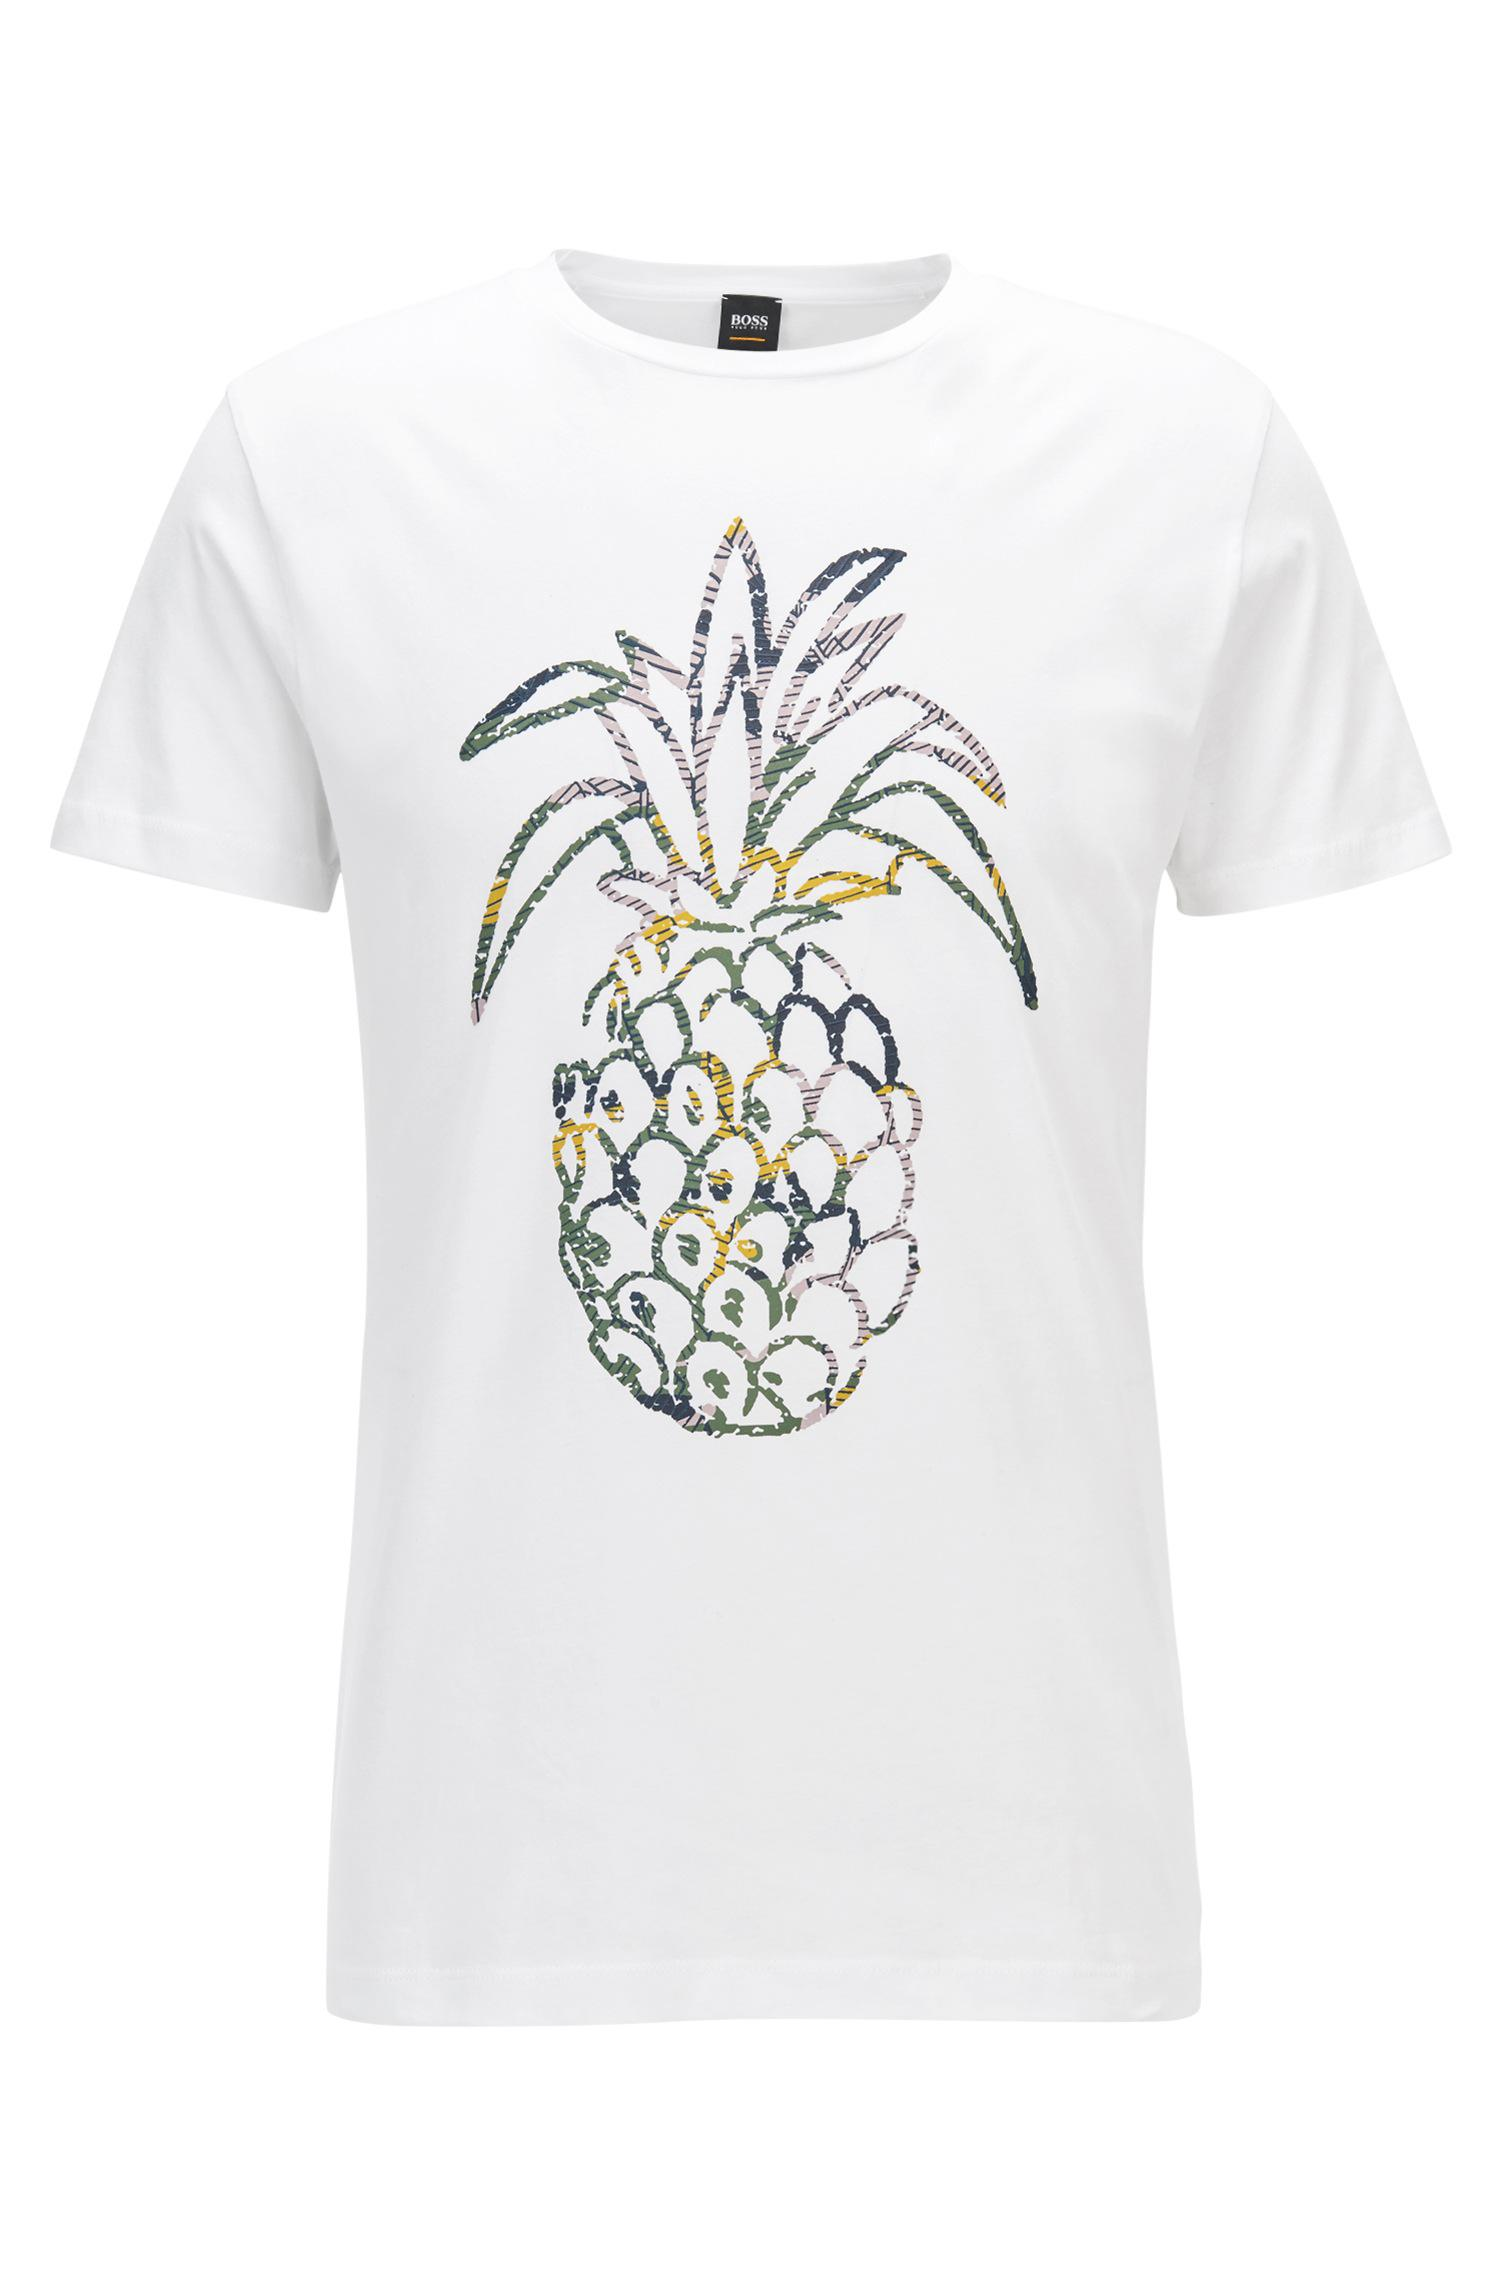 6f36bb27 BOSS Pineapple Cotton Jersey Graphic T-shirt | Tauno in White for ...